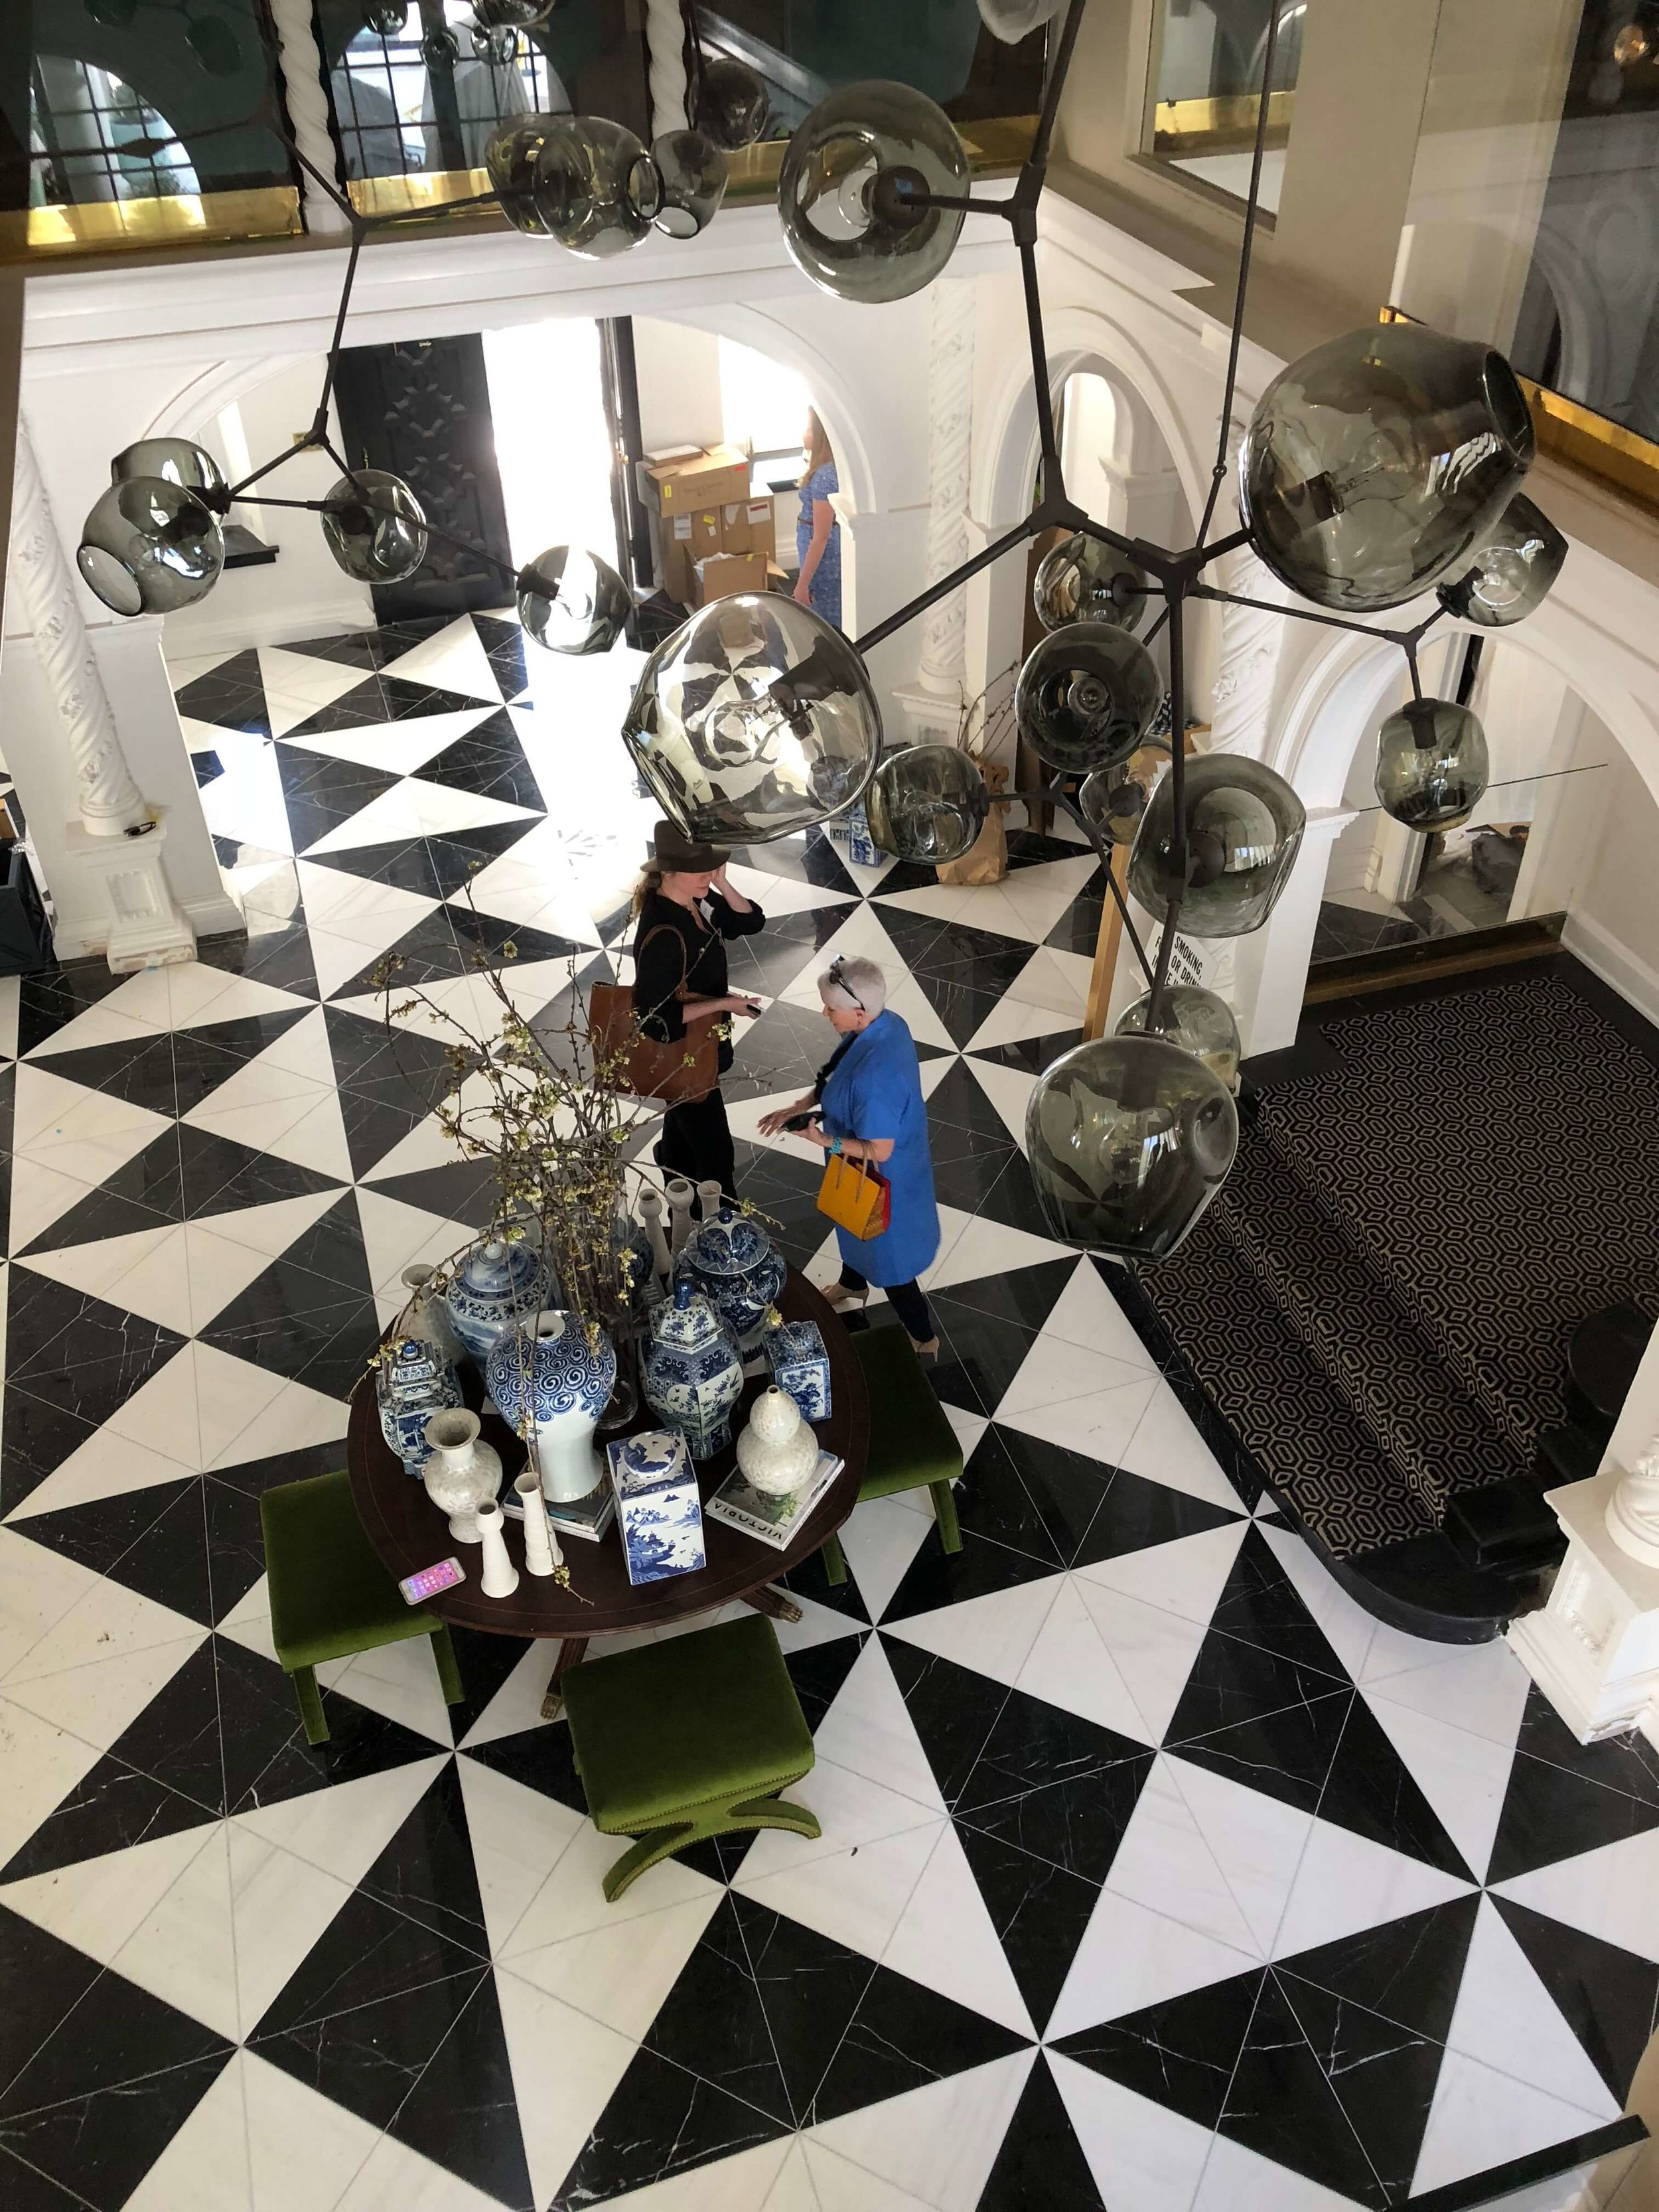 Black and white marble tile geometric floor in the entry hall of Pasadena Showcase House of Design Entry Hall - Designer: Amy Peltier